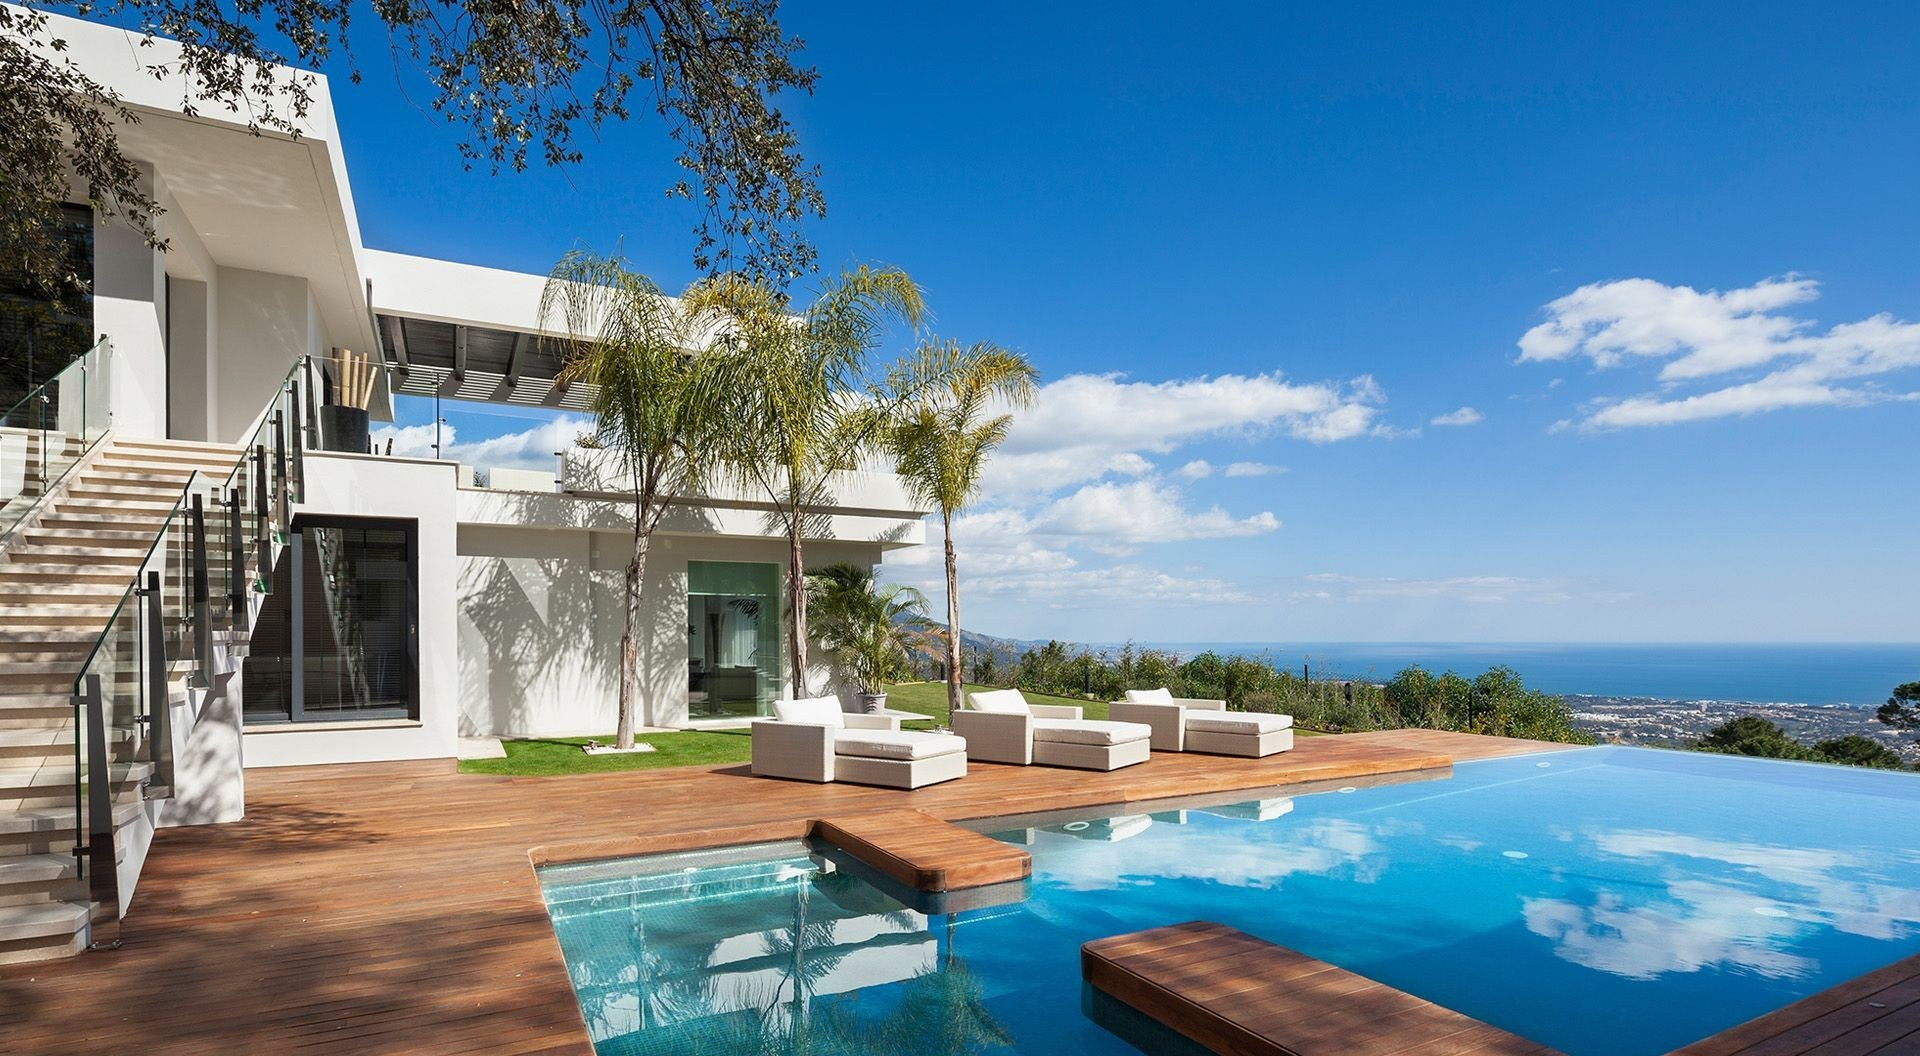 Villa for rent in Benahavis, La Zagaleta